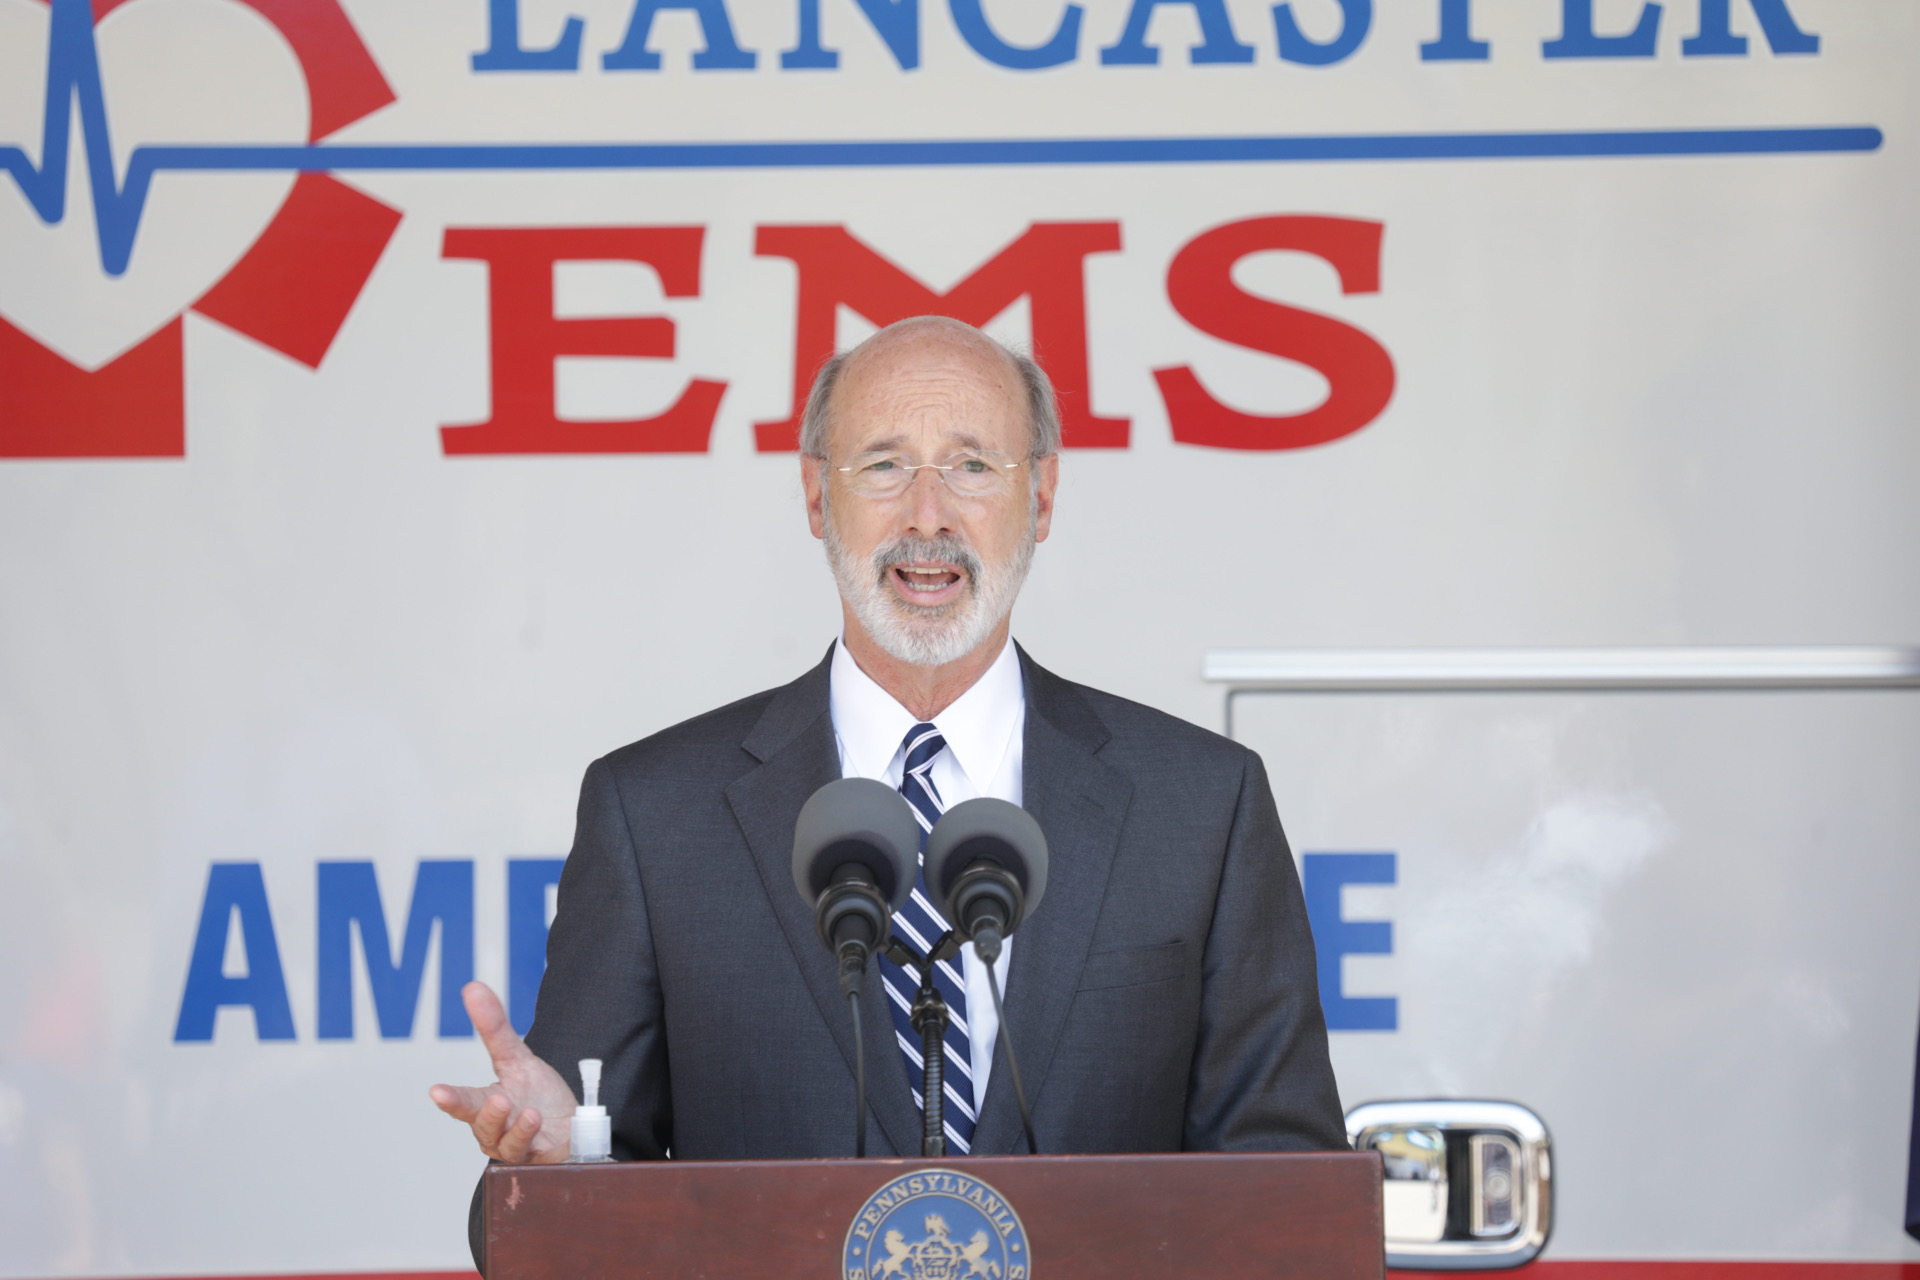 Gov. Tom Wolf speaks at the Millersville branch of Lancaster EMS on Thursday, July 30, 2020. (Source: Office of the Governor)